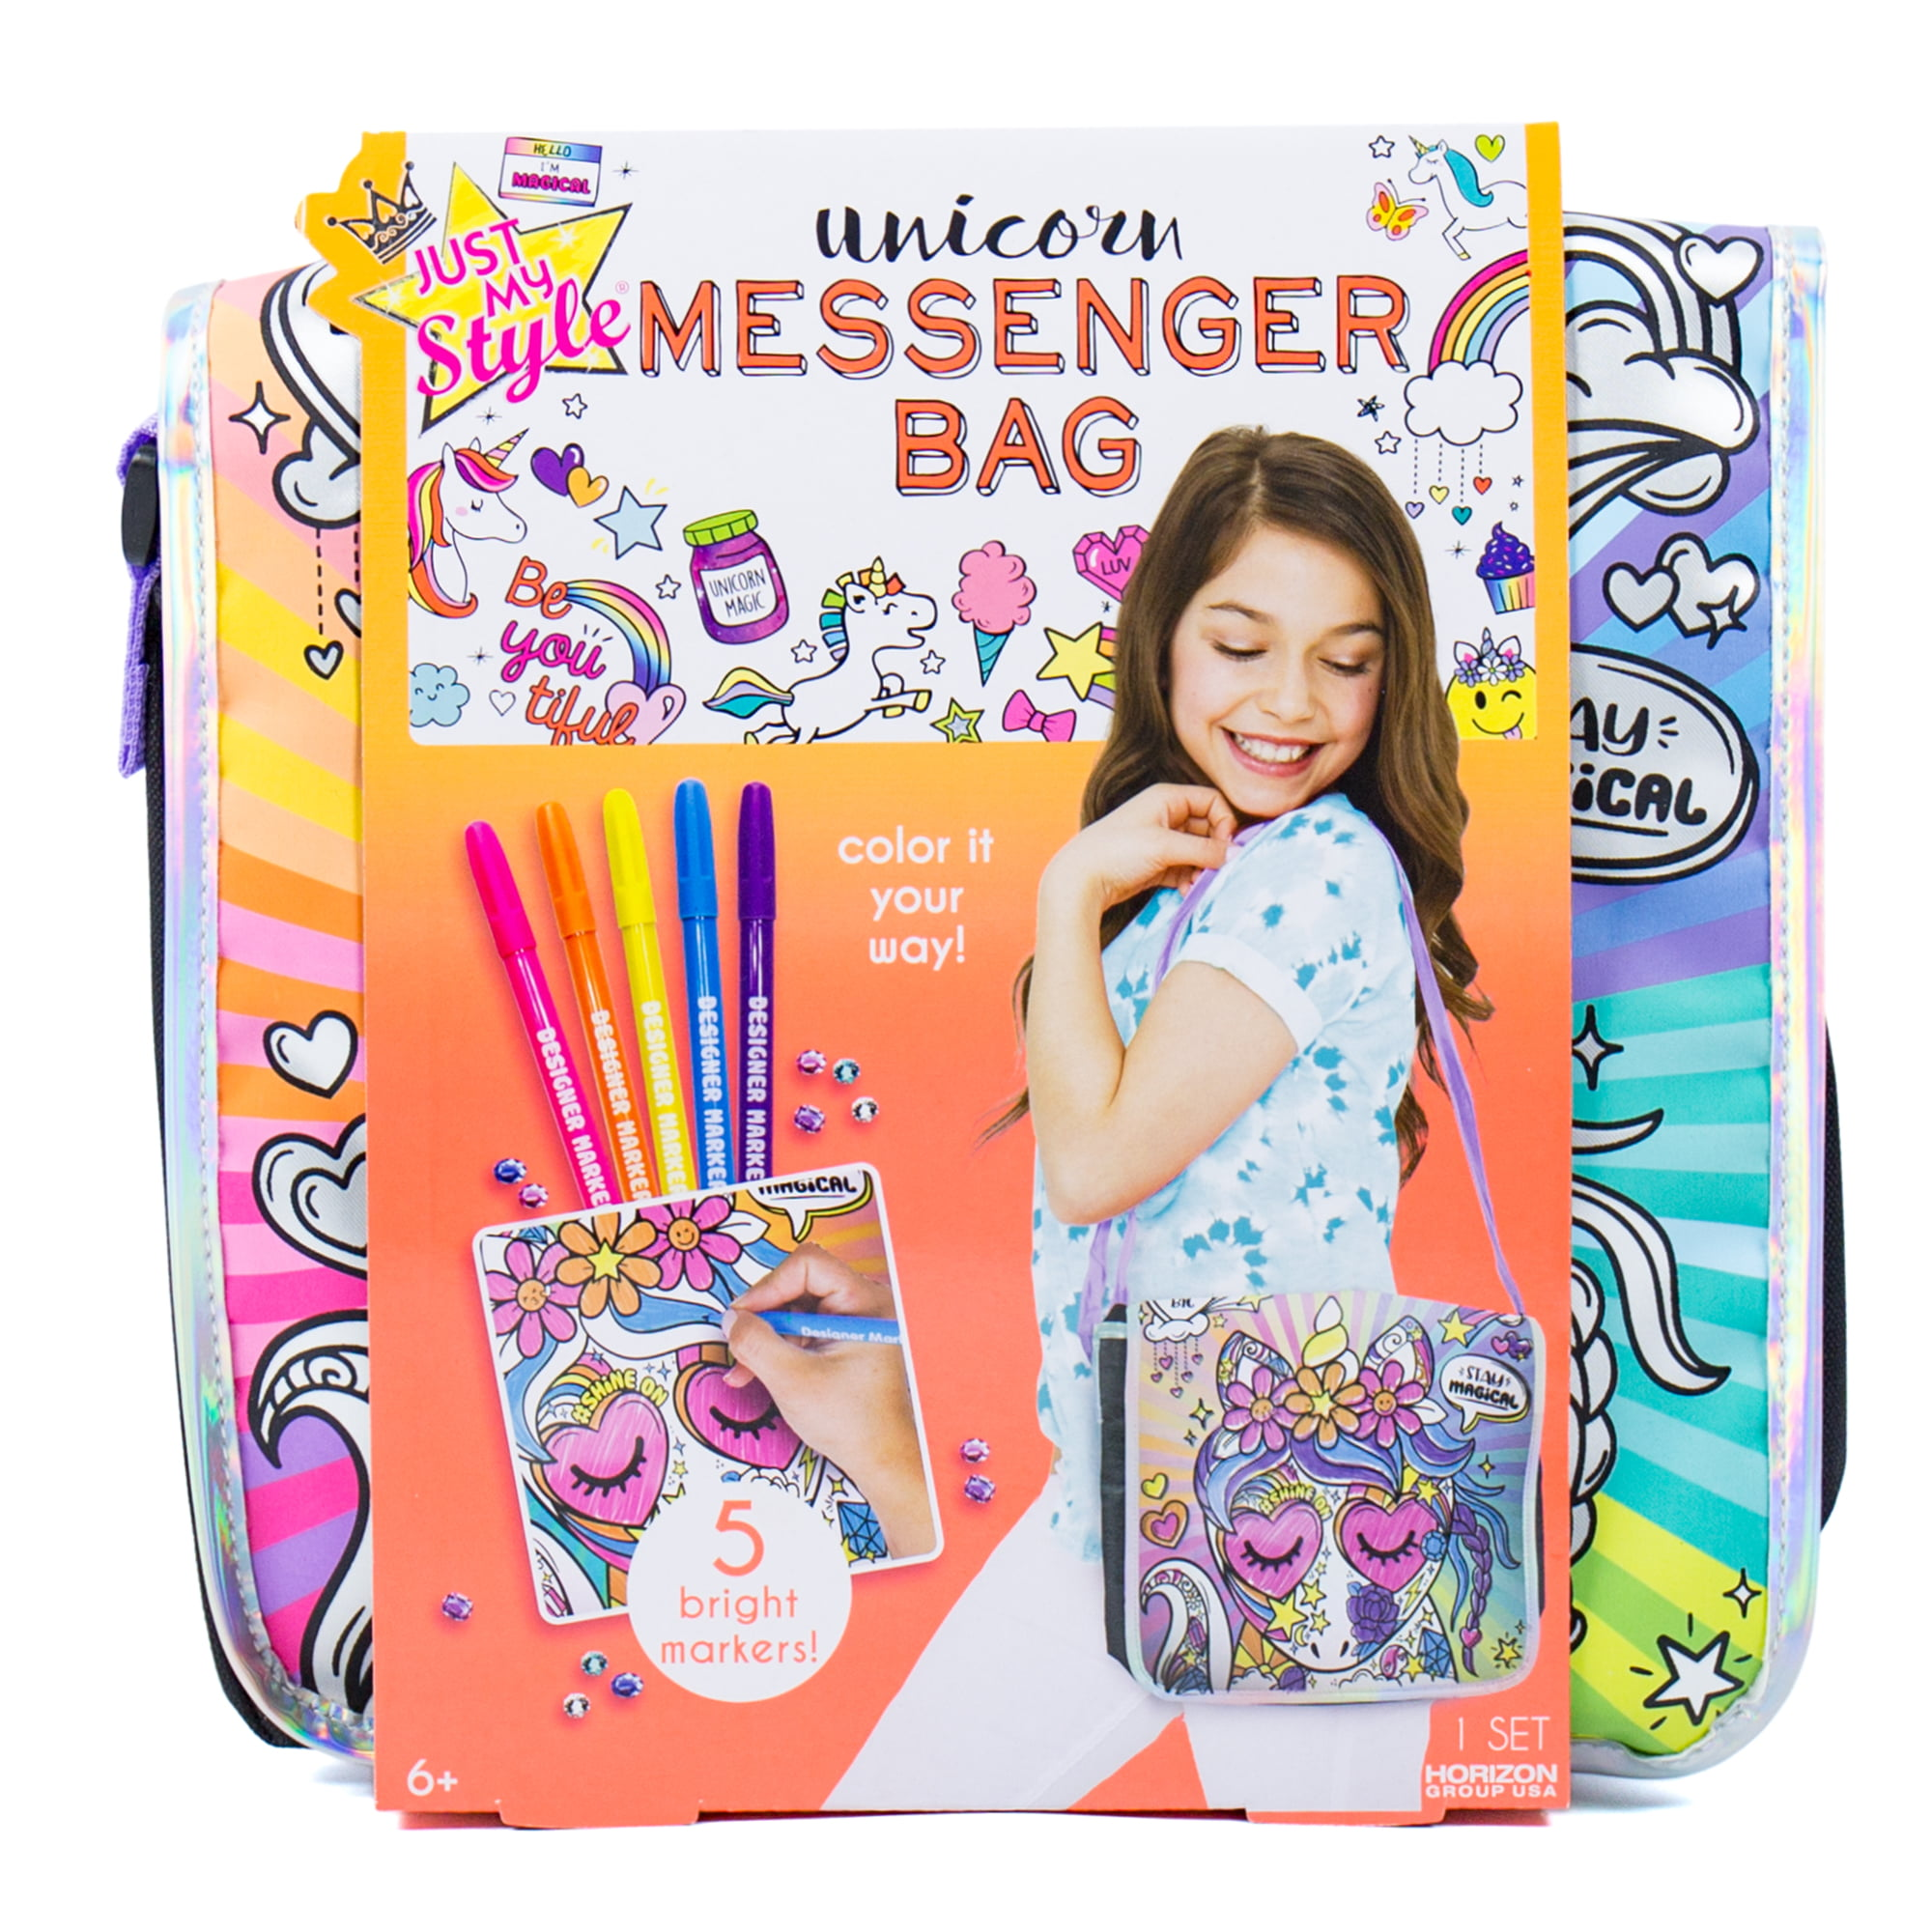 Young Girls Messenger Bag Made With Multi Colored Floral Fabric